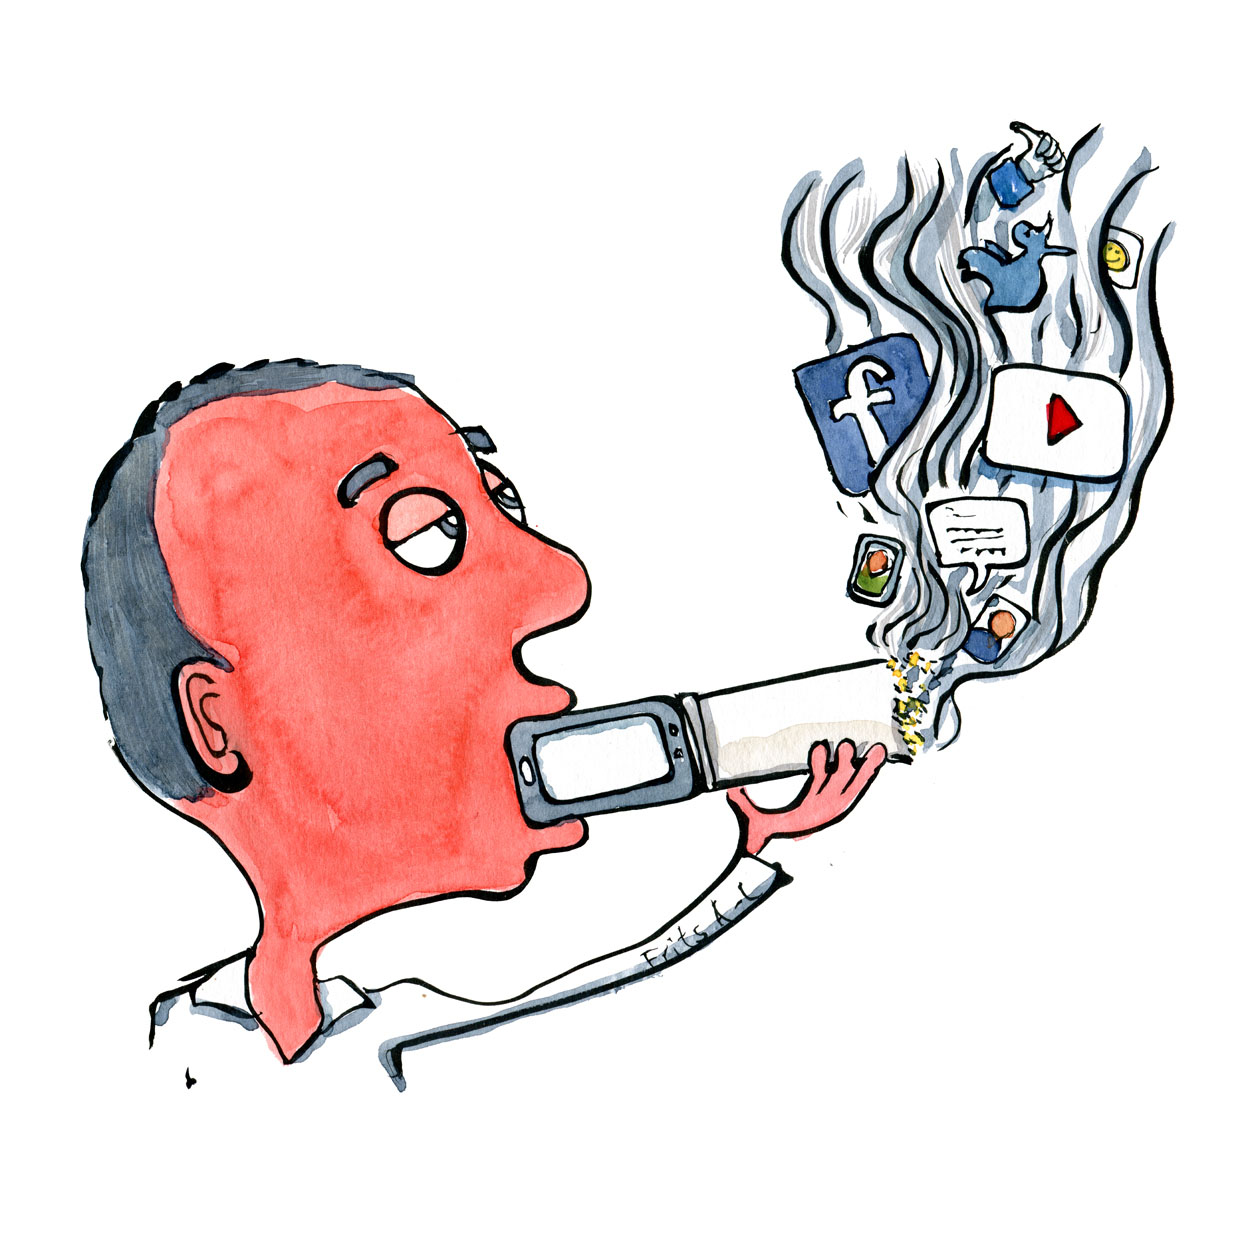 Drawing of a man smoking social media junkie. Illustration by Frits Ahlefeldt